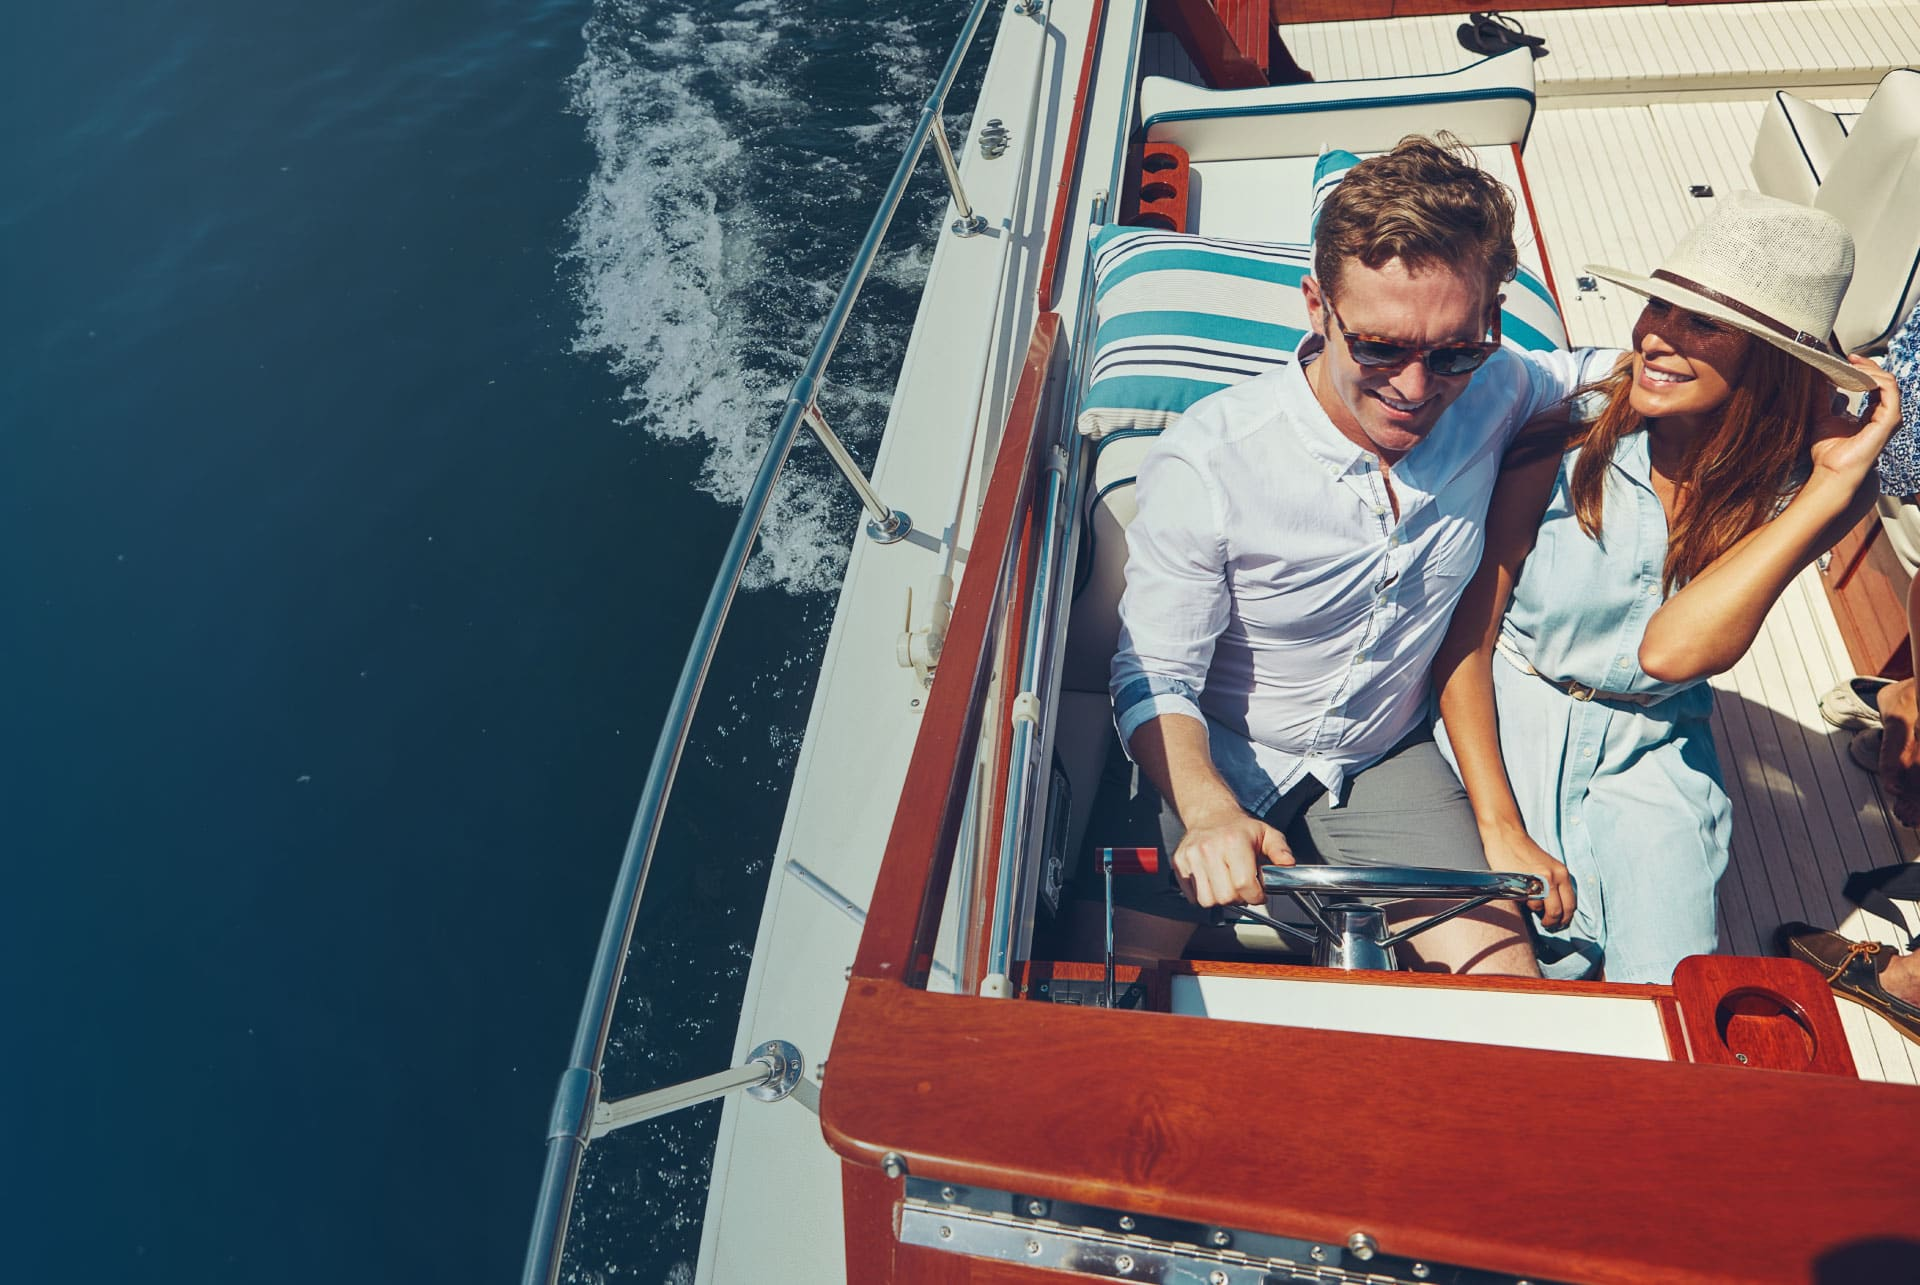 Man and woman driving a boat with mahogany trim and chrome railing.